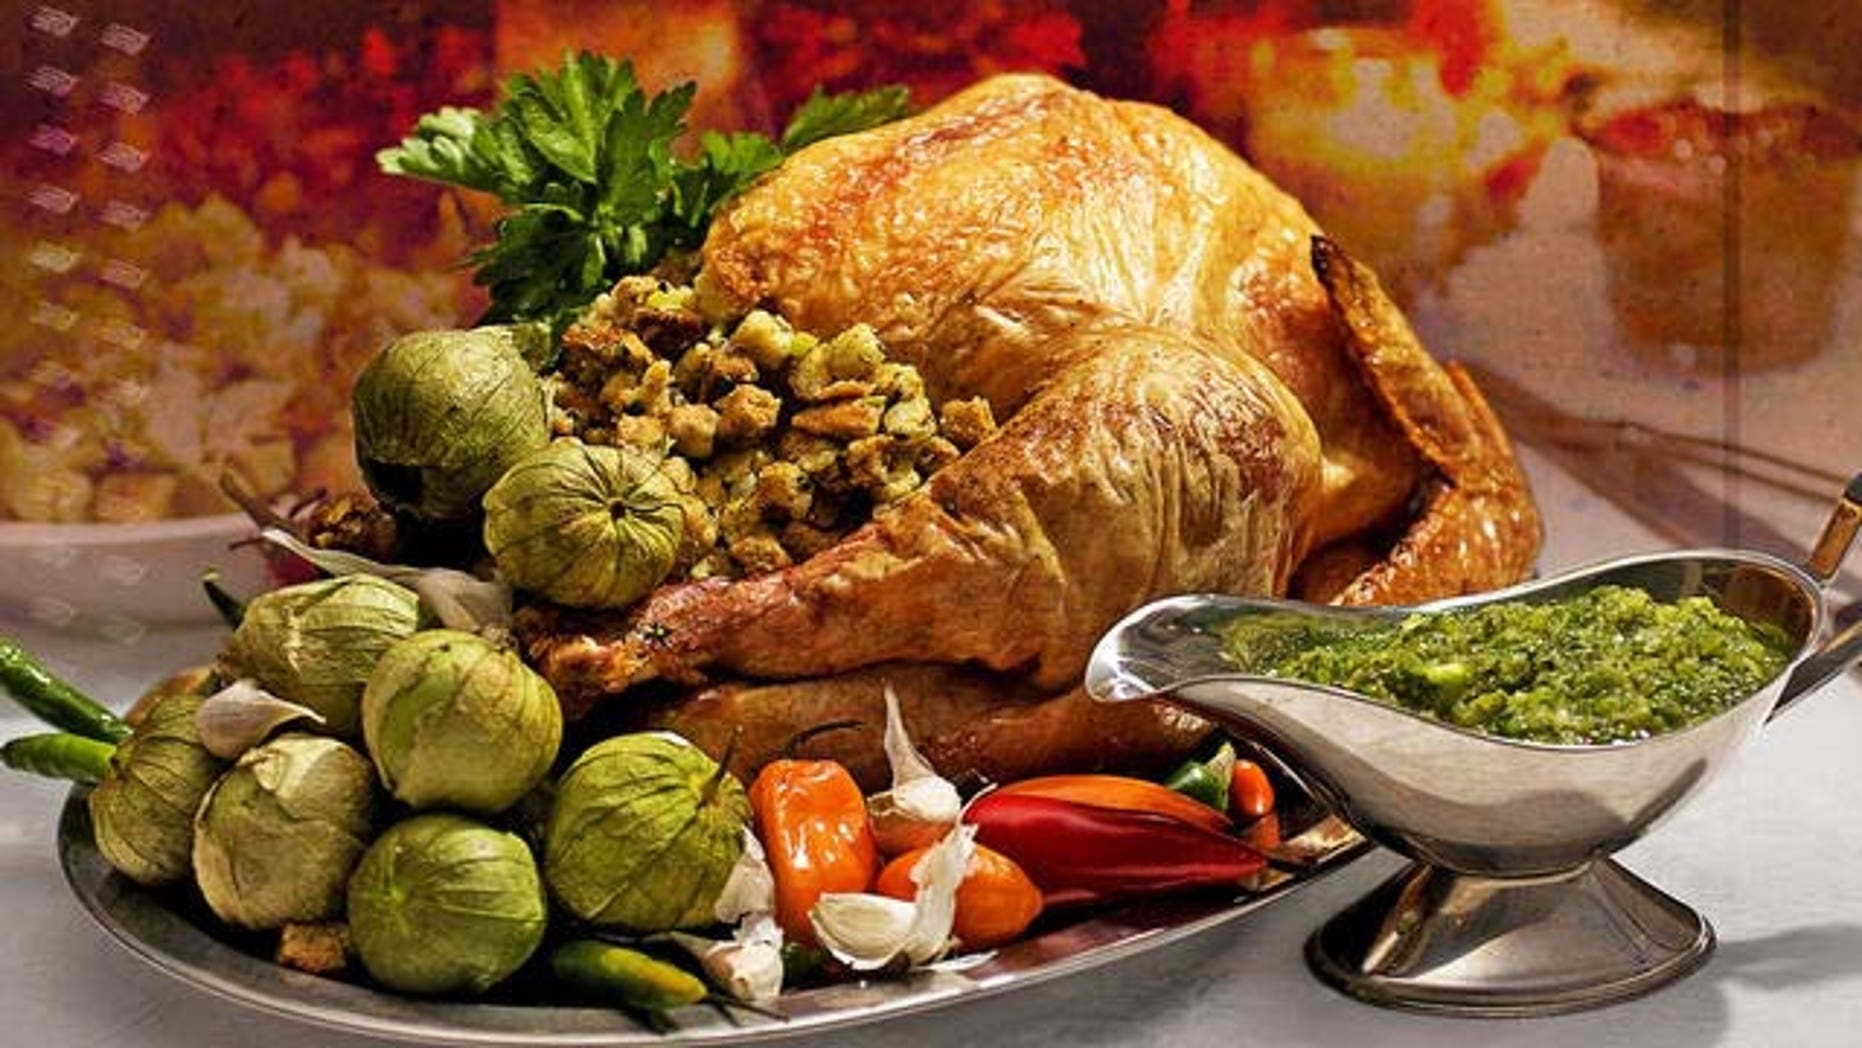 **FOR USE WITH AP LIFESTYLES** **FILE**   This Oct. 19, 2008 file photo shows a Grill-roasted Brined Turkey with Anaheim Chile Salsa Verde.  To save money this Thanksgiving brine your own bird.   (AP Photo/Larry Crowe, FILE)